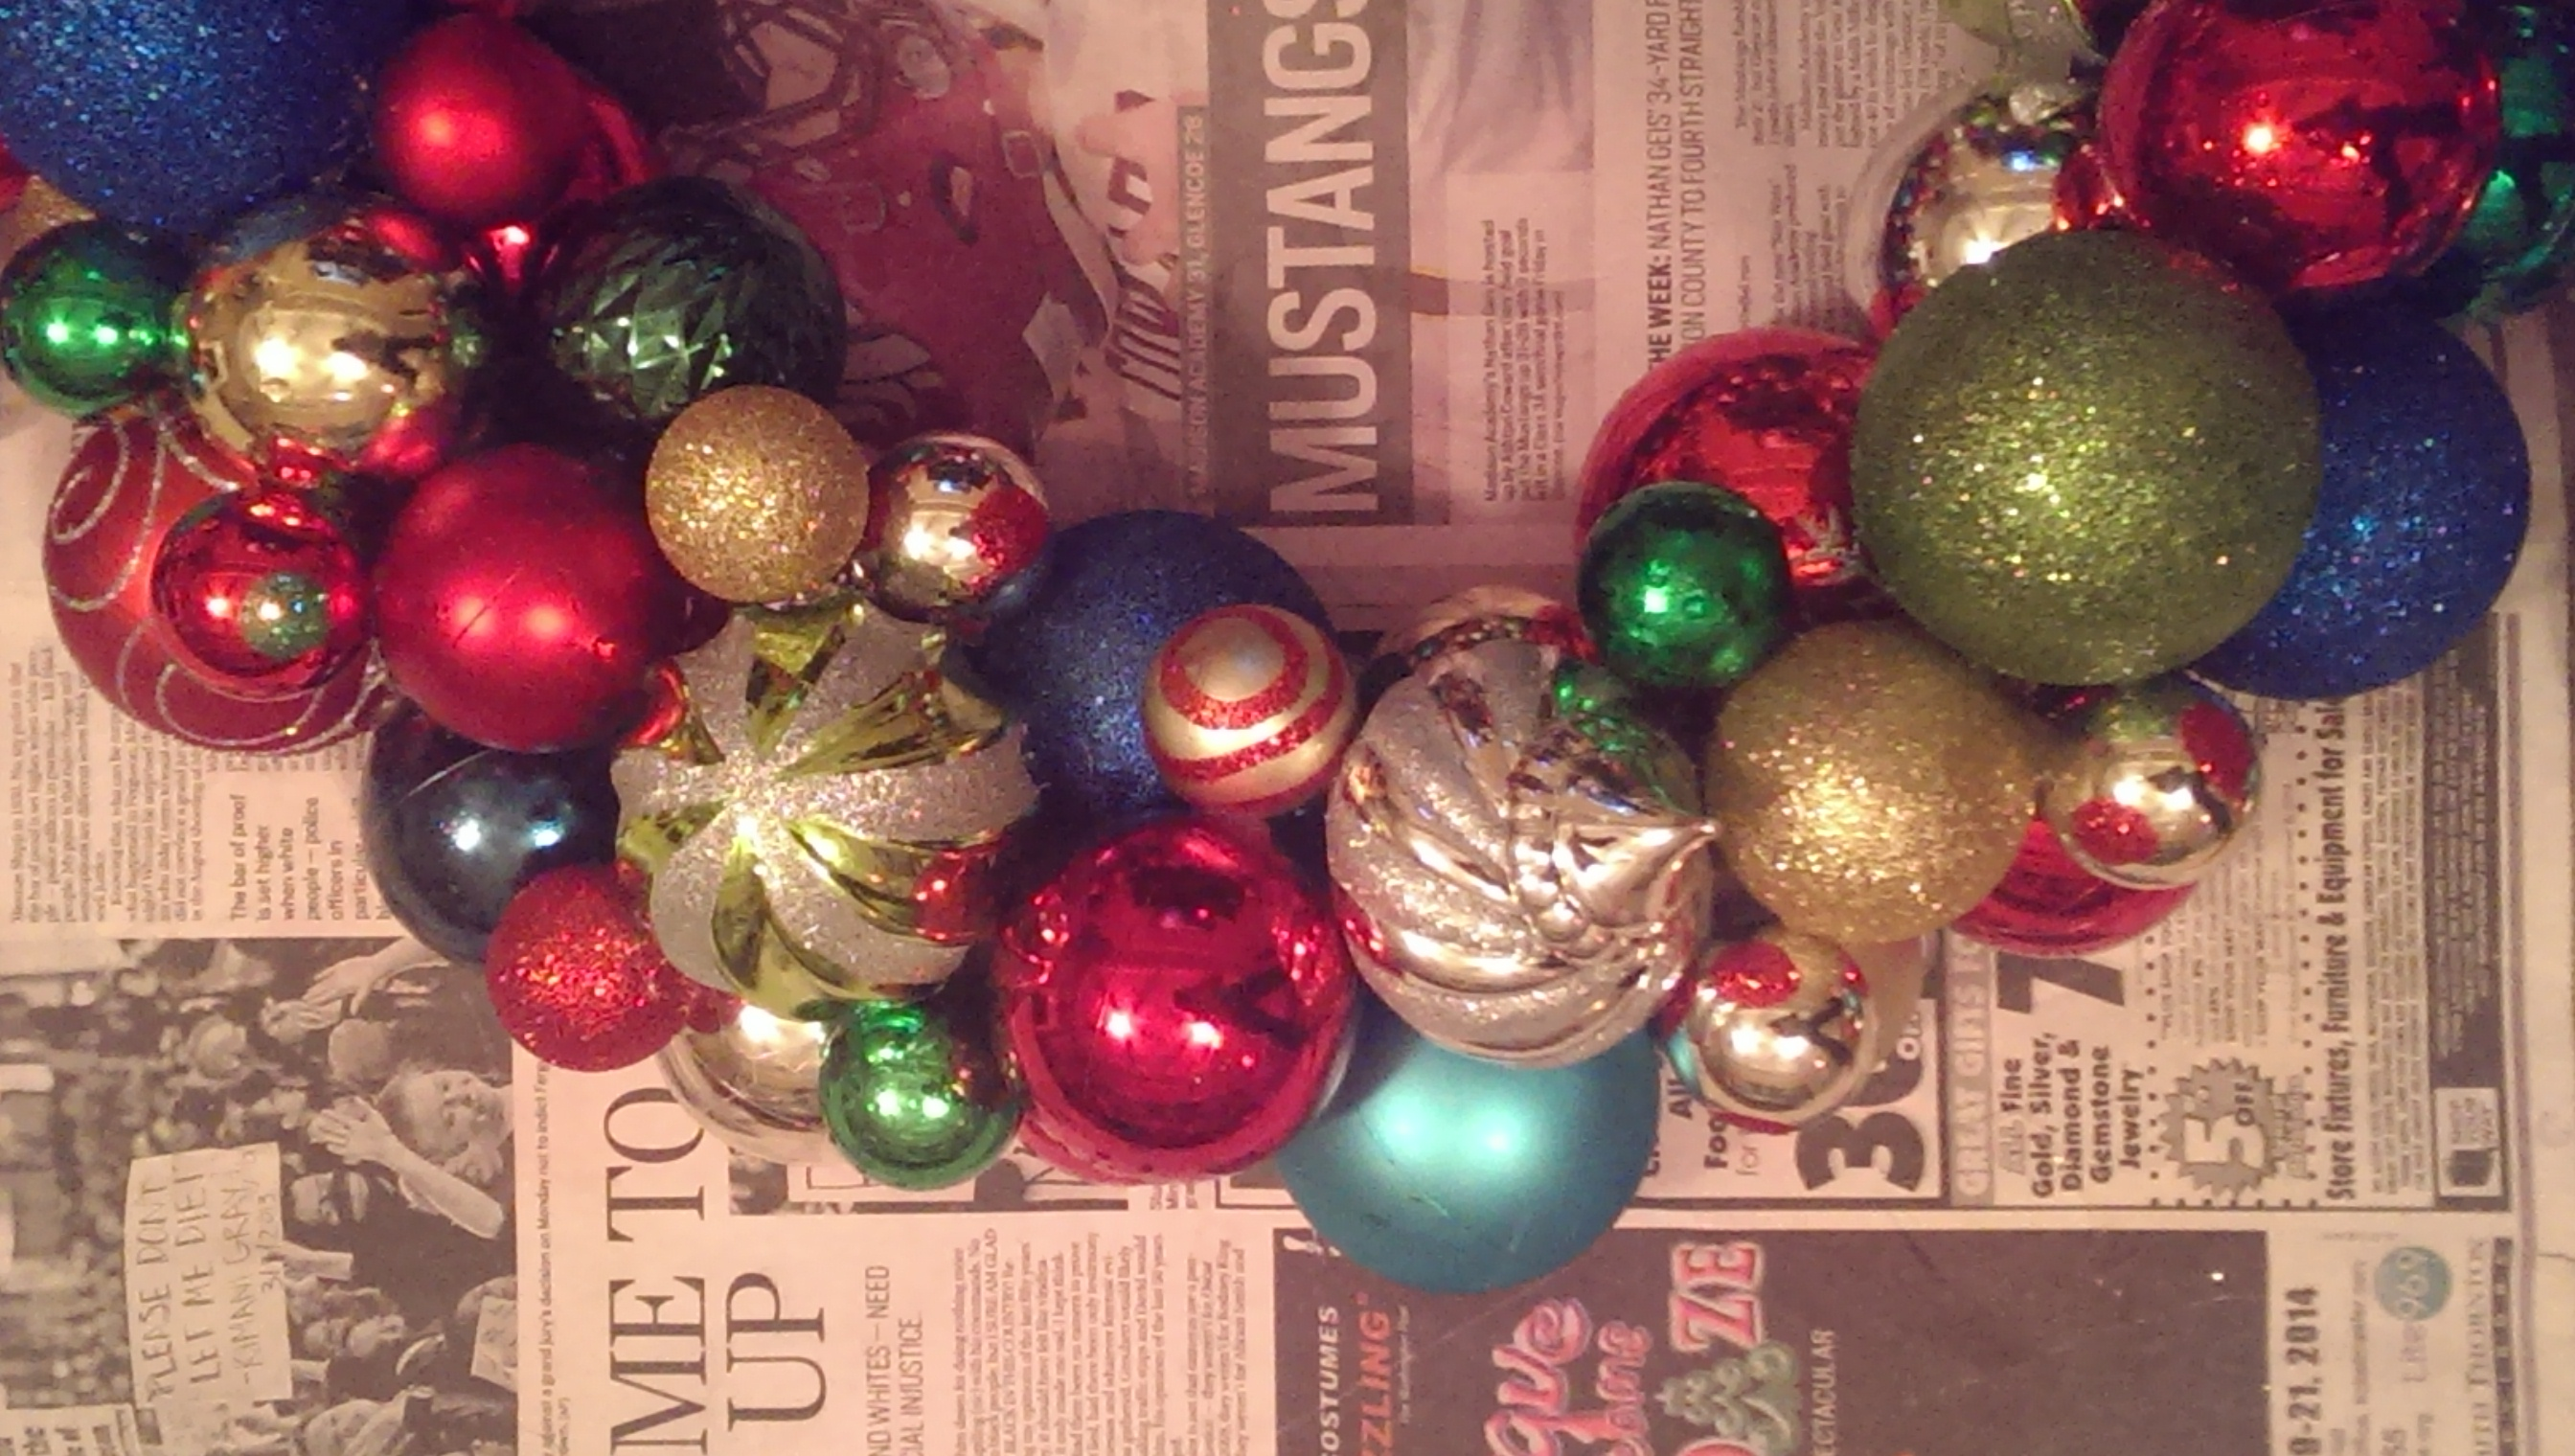 First christmas as a married couple ornament - I Ll Be The First To Admit That I Struggle With Finding My Family S Christmas Style As A Relatively Newly Married Couple We Are Still Meshing Our Ideas Of